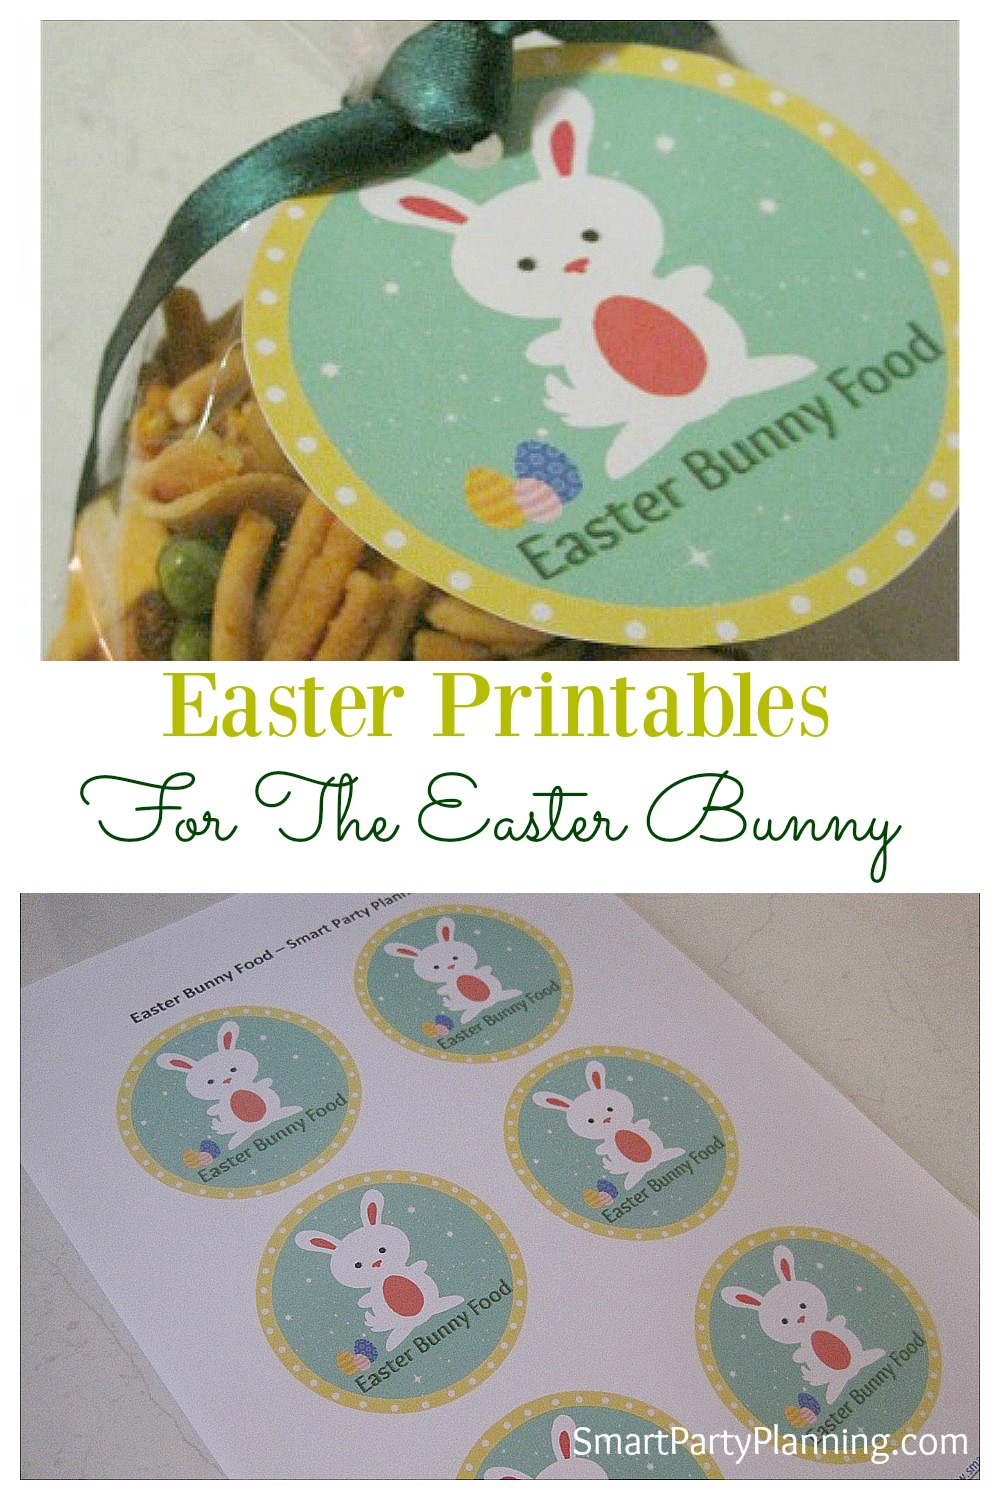 Looking for some DIY crafts to make with the kids this Easter? Print off these Easter printables for the Easter bunny and attach to a bag of food. The kids will delight in leaving out the bunny food the night before Easter. It's a fun activity to do with the kids.